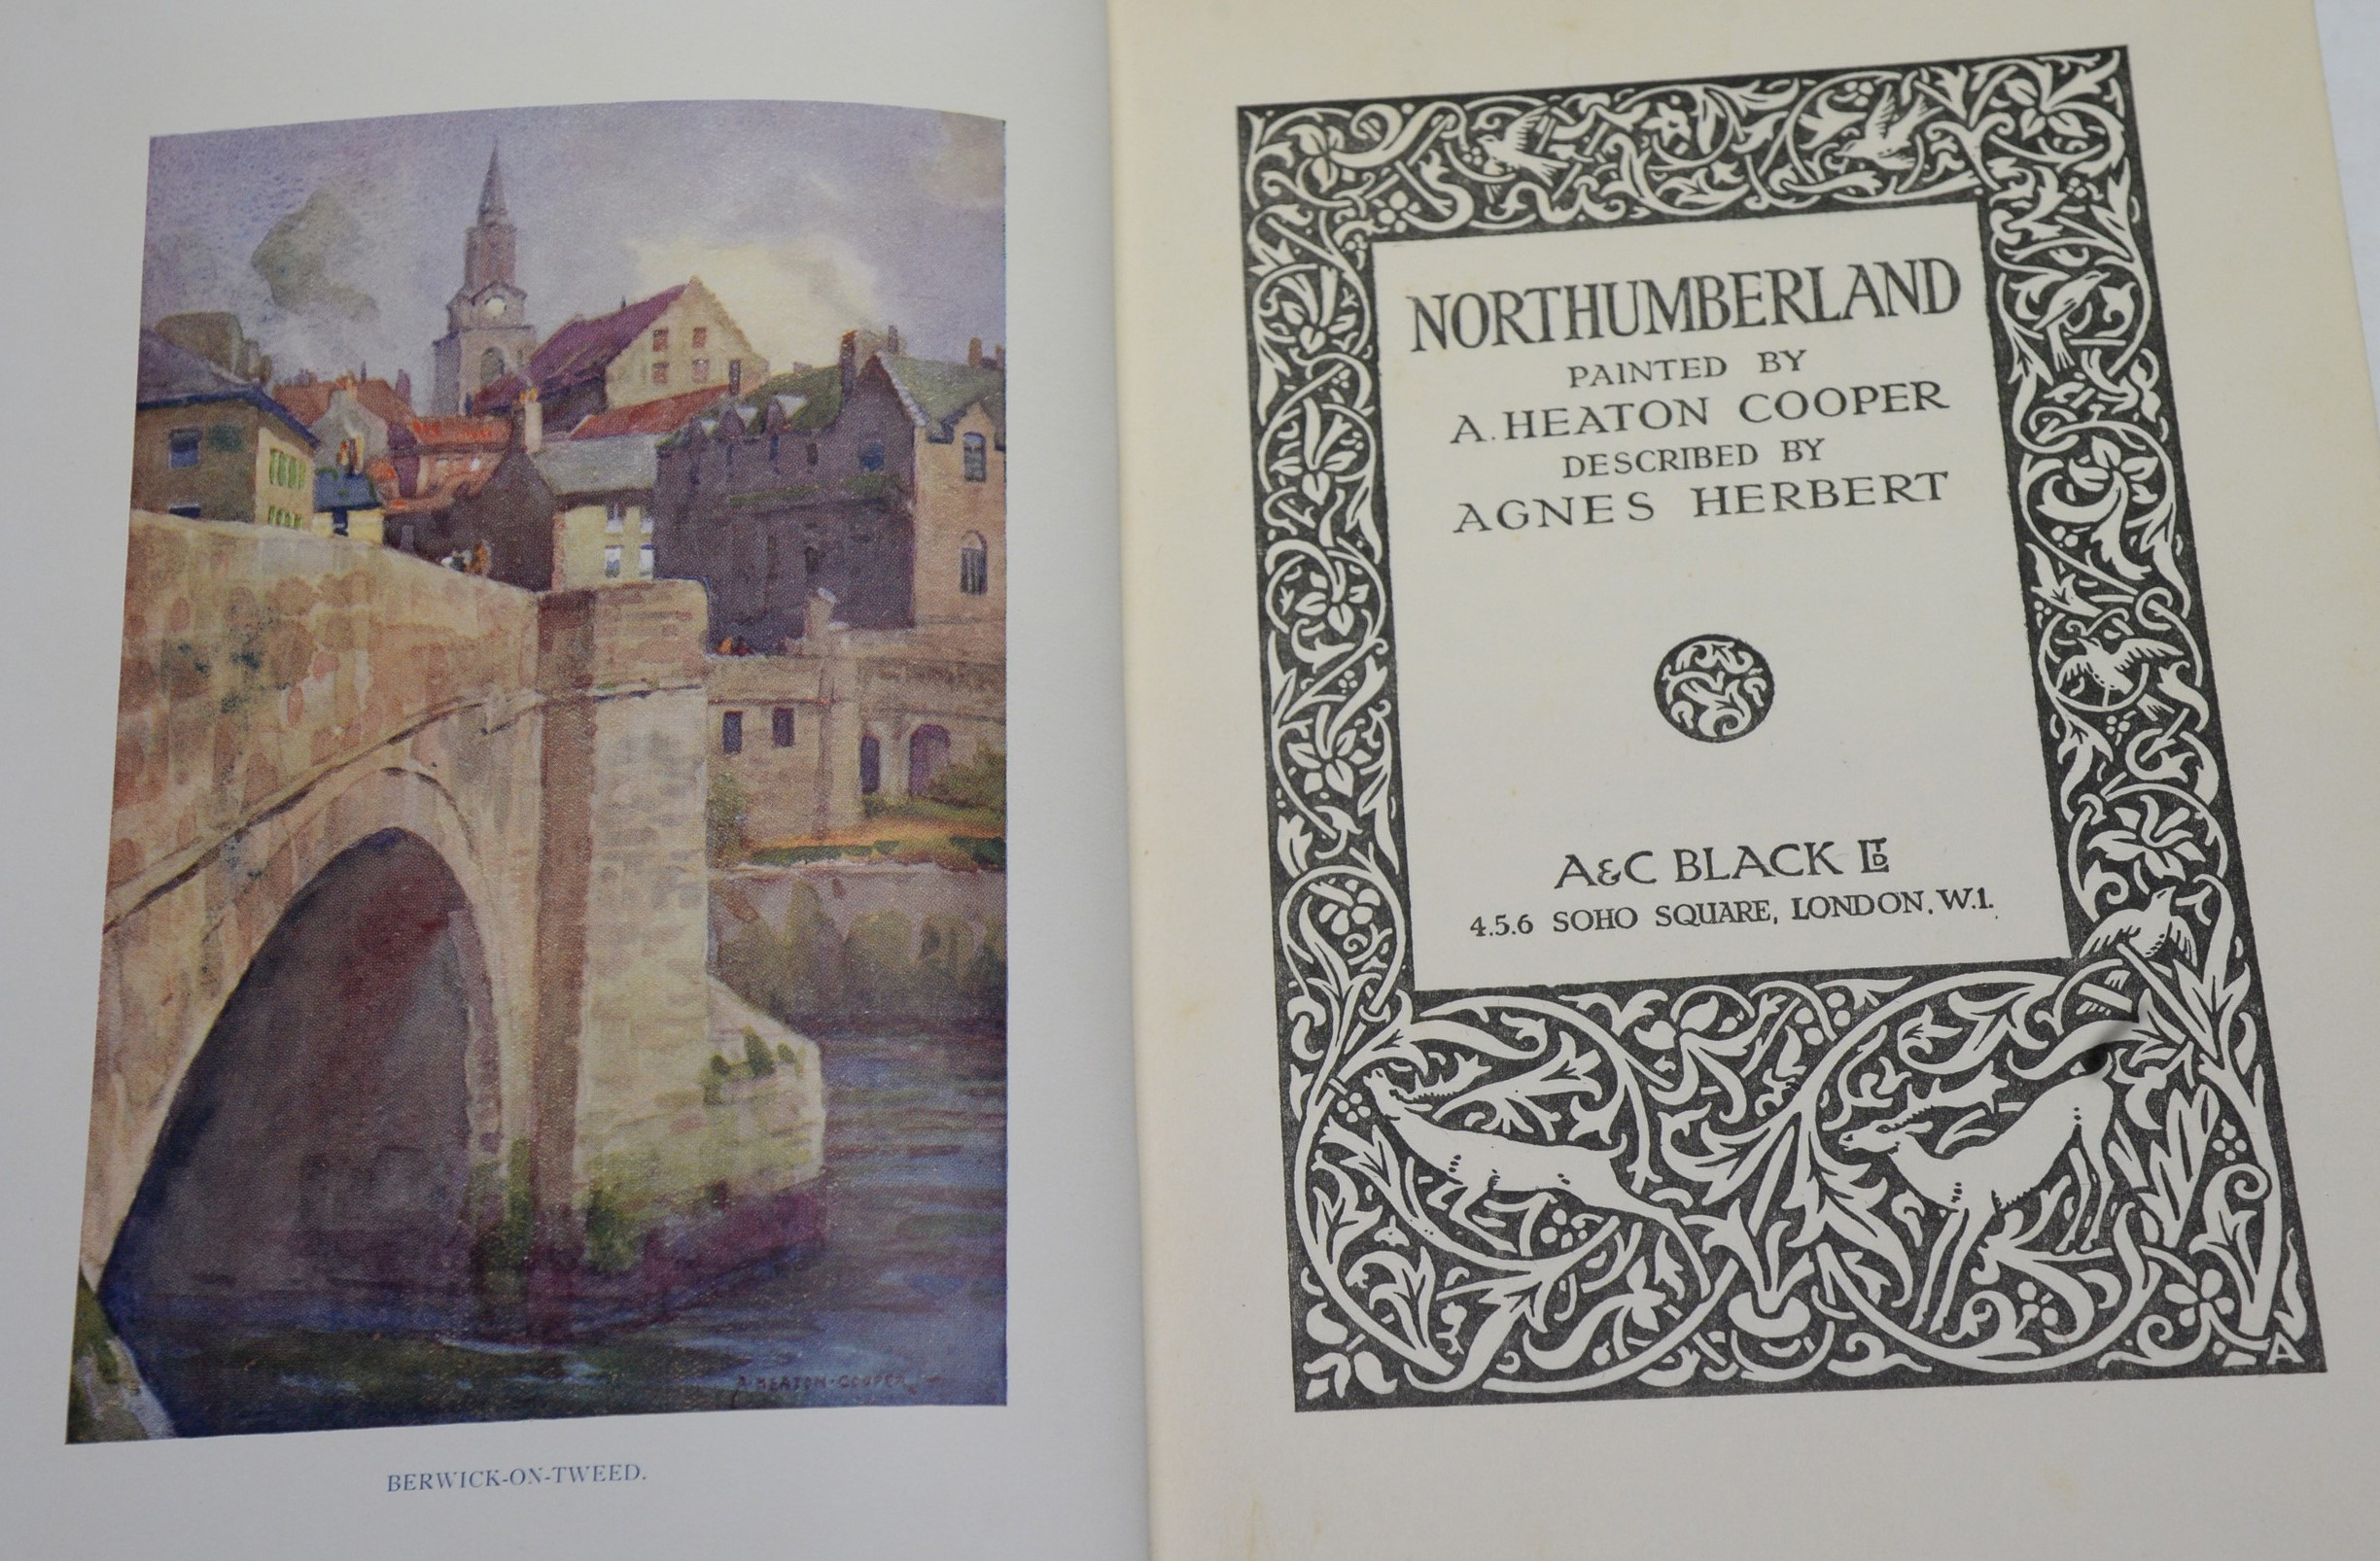 Knowles (W.H.) and Boyle (J.R.) and other Authors on Northumbrian interest. - Image 3 of 4